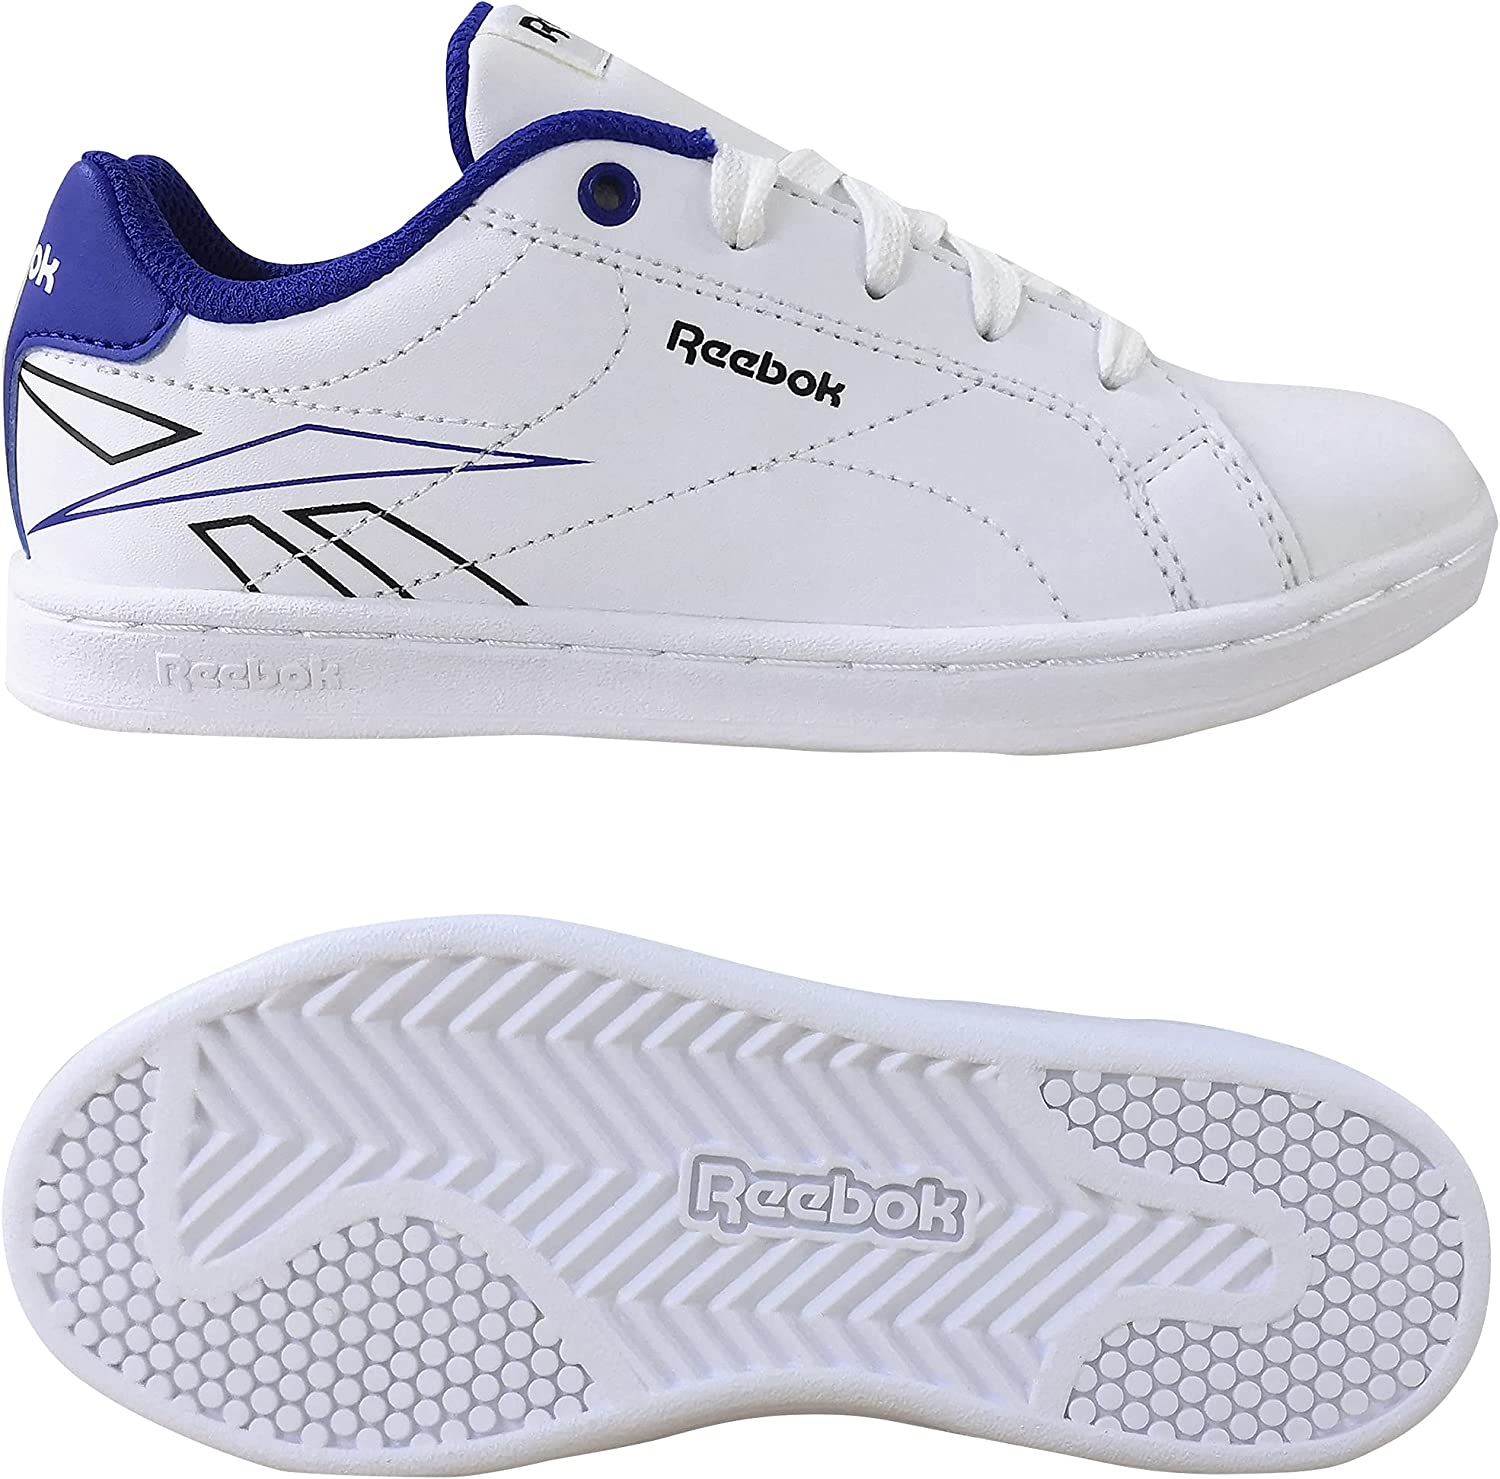 Reebok Boys Shoes Sneaker Training Running Compl Athletics Finally popular brand Be super welcome Royal